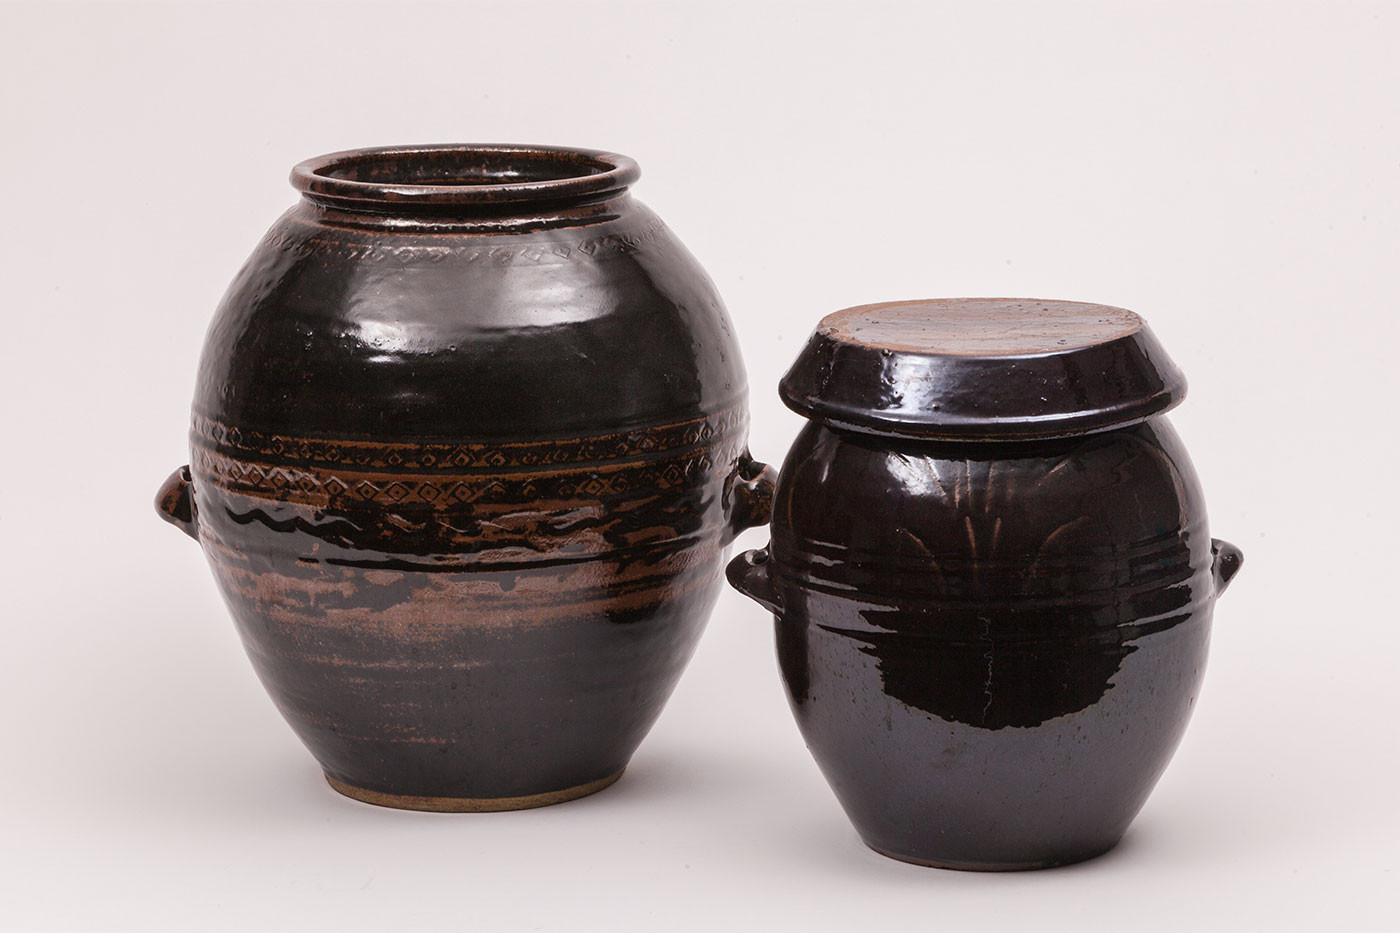 antique chinese vase appraisal of smithsonian folklife festival 50 years 50 objects pertaining to onggi pottery